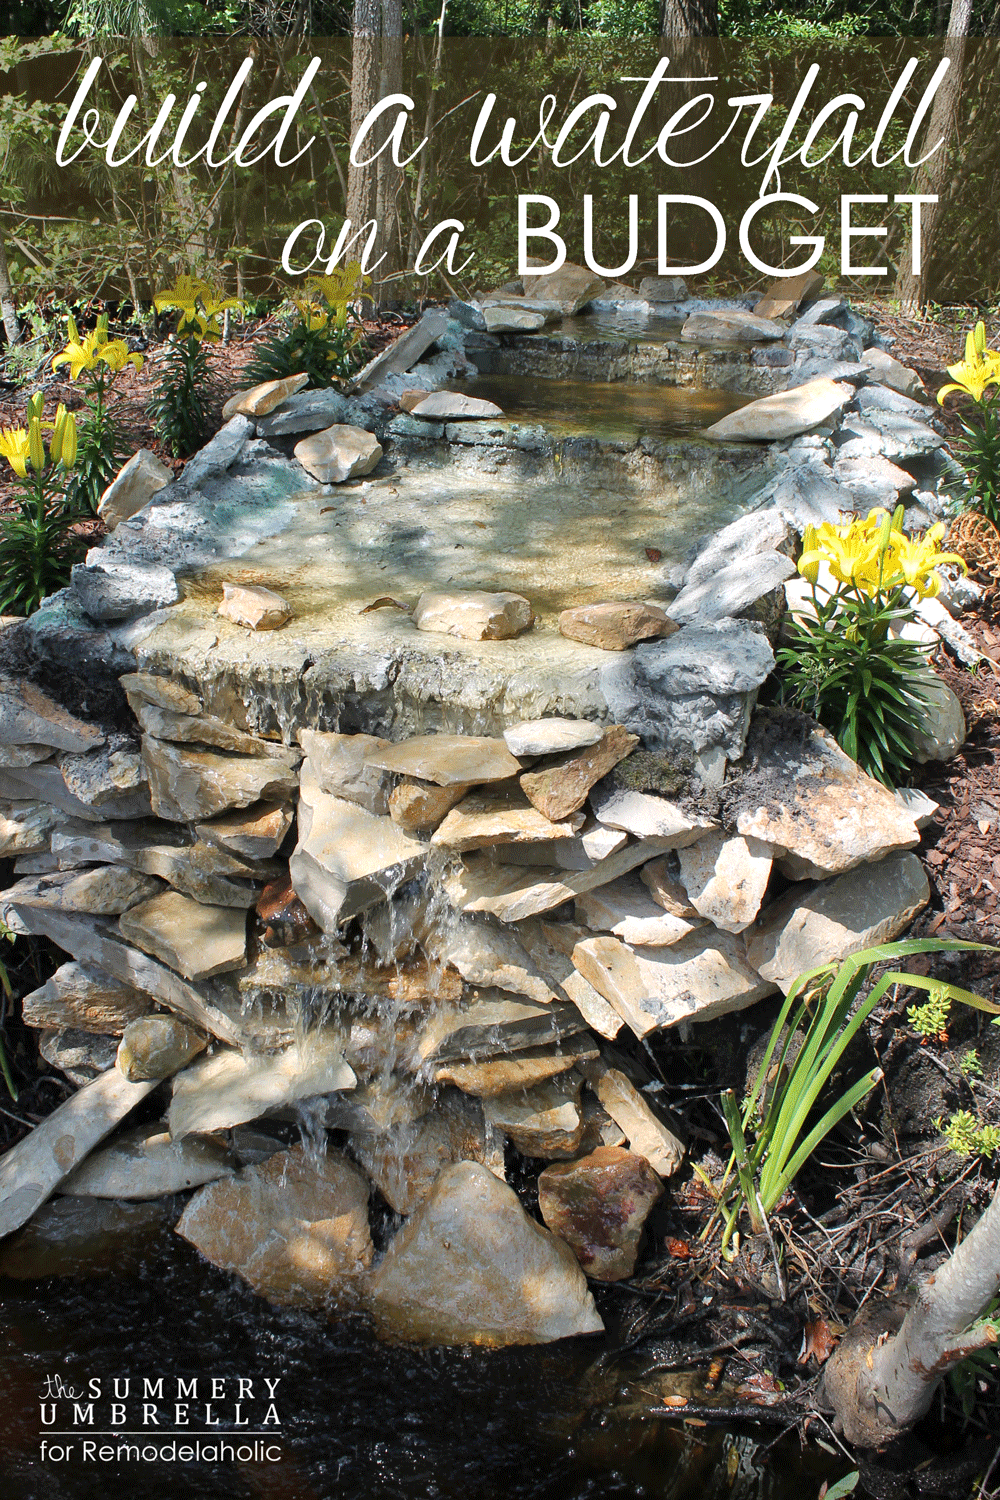 Genial How To Build A DIY Waterfall On A Budget (as In, $300!)